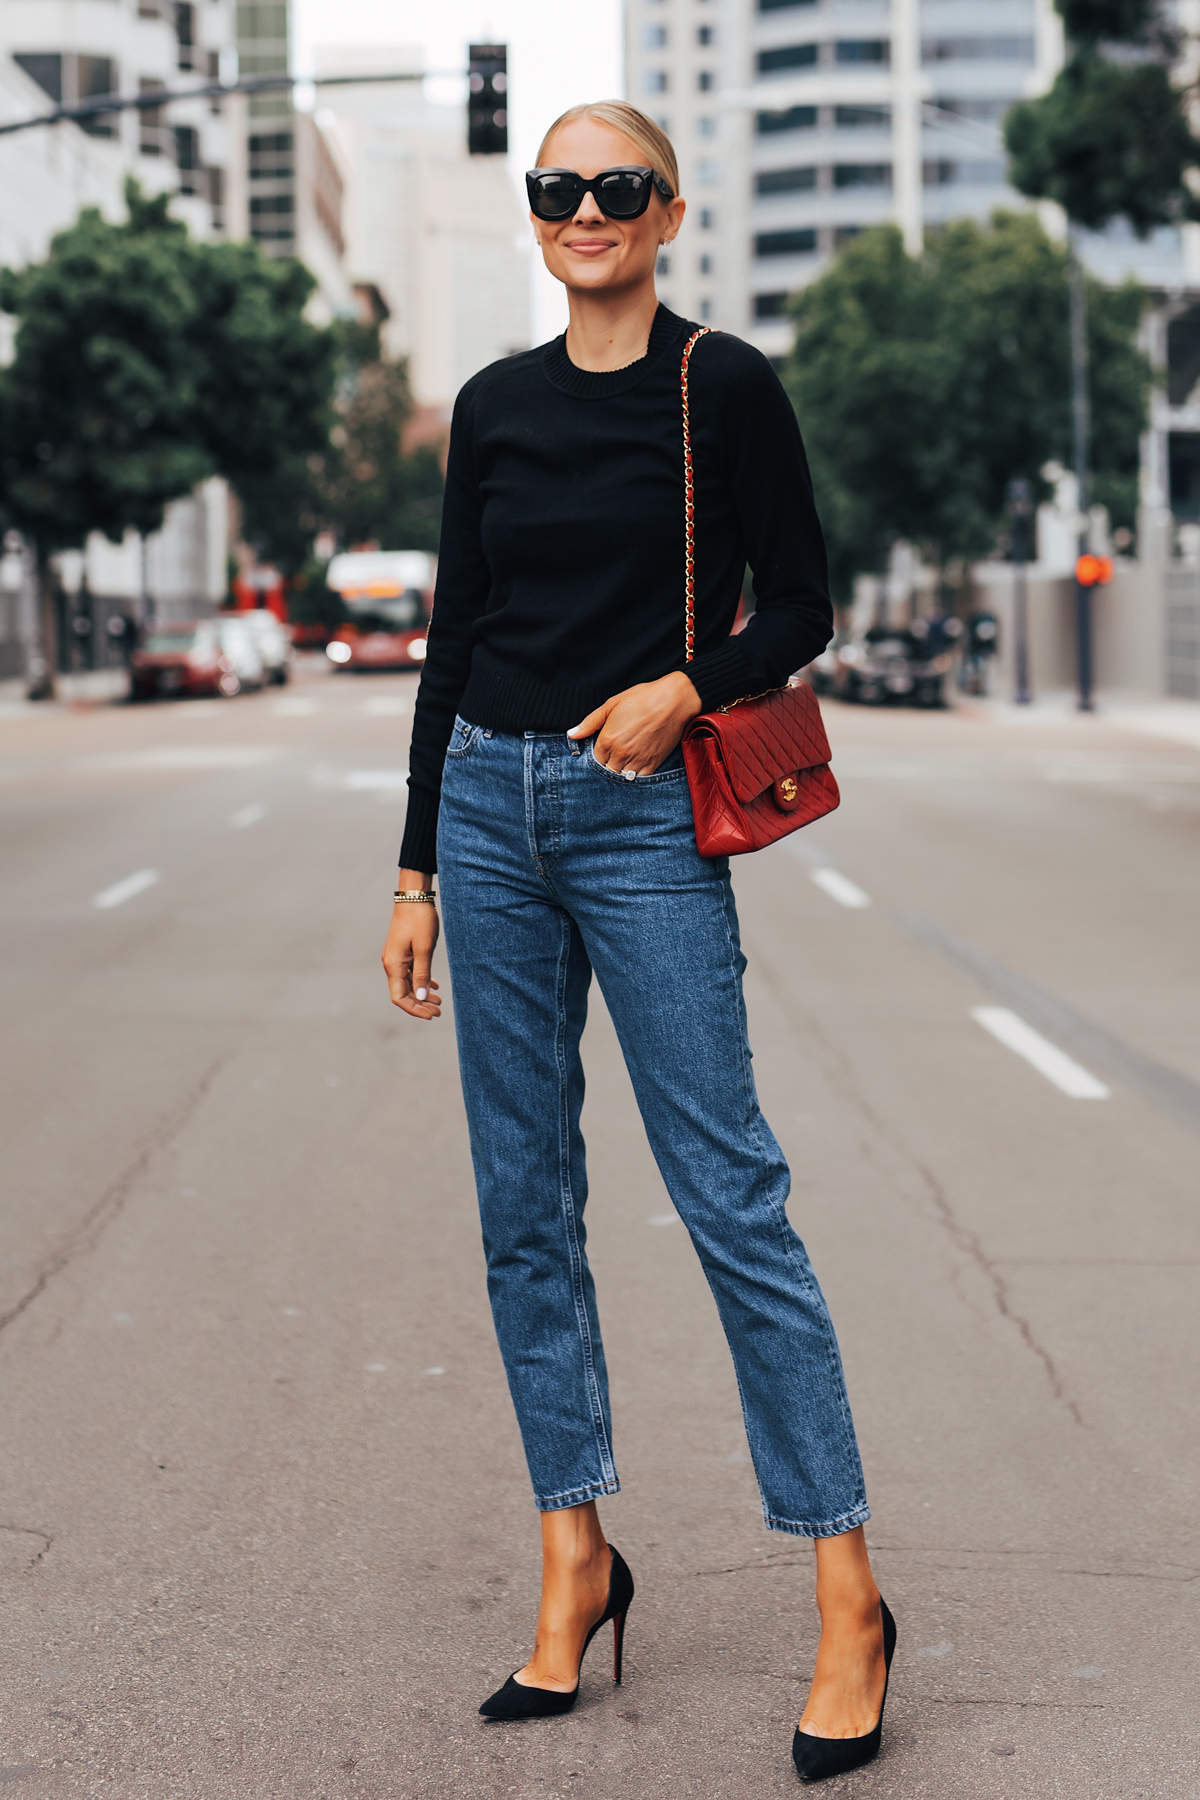 Fashion Jackson Wearing Everlane Black Cashmere Sweater Everlane Relaxed Jeans Black Pumps Chanel Red Handbag 2